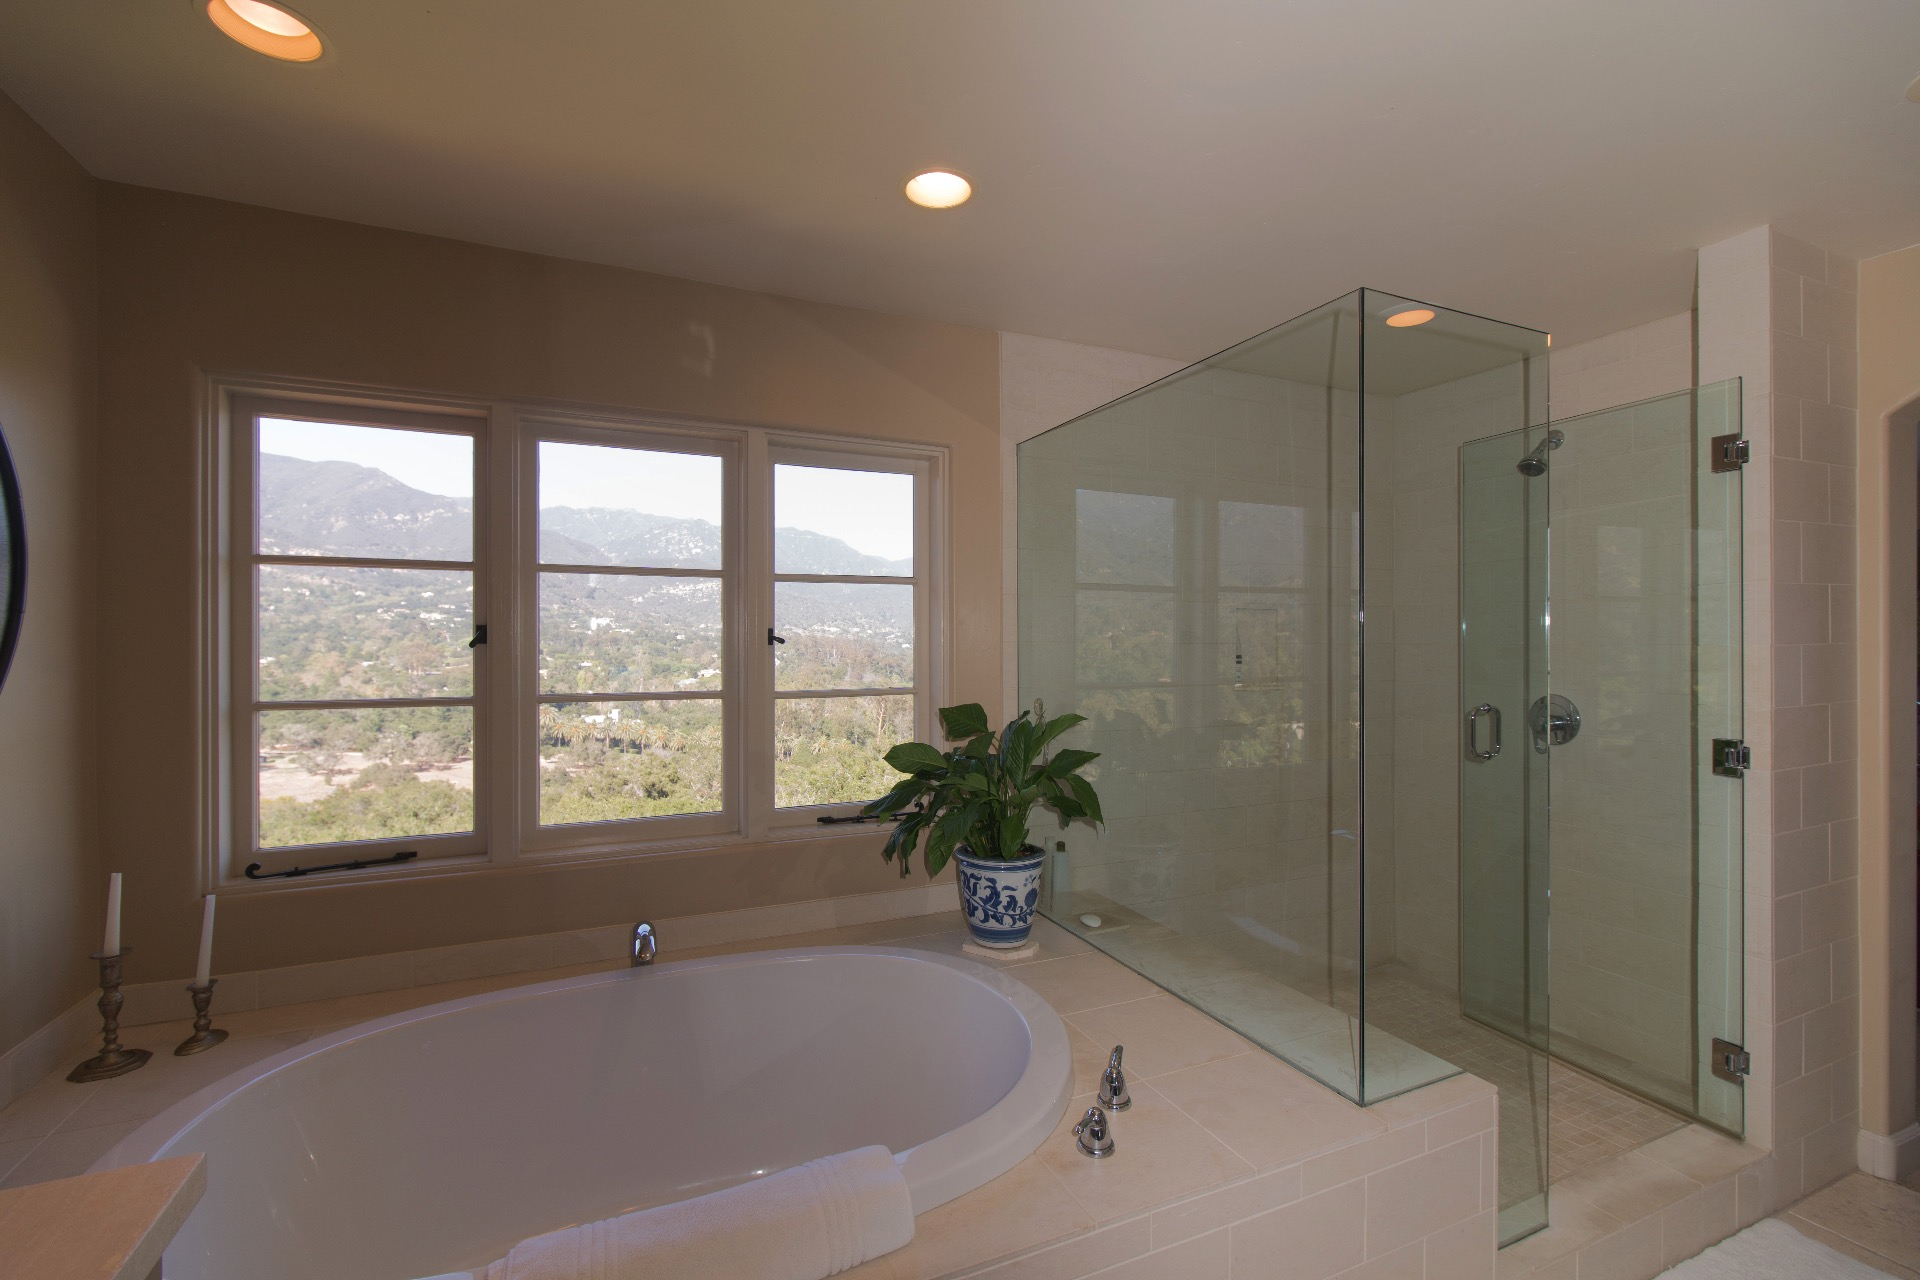 The master bathroom tub and shower